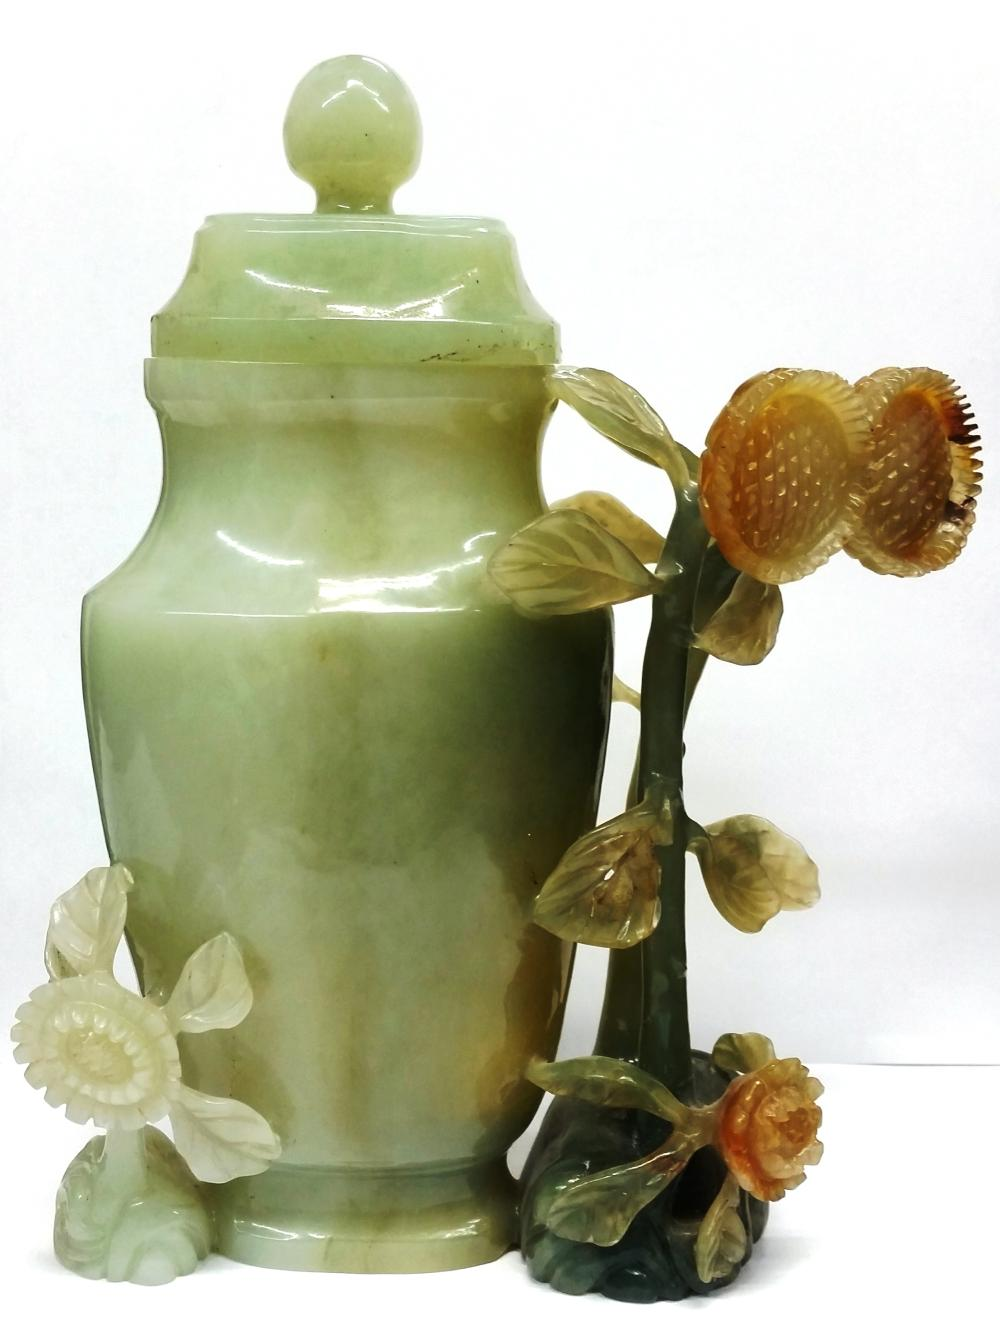 Antique Chinese Large Green Jadeite Jade Floral Covered Vase Urn Trosby Galleries Palm Beach 1970s Provenance